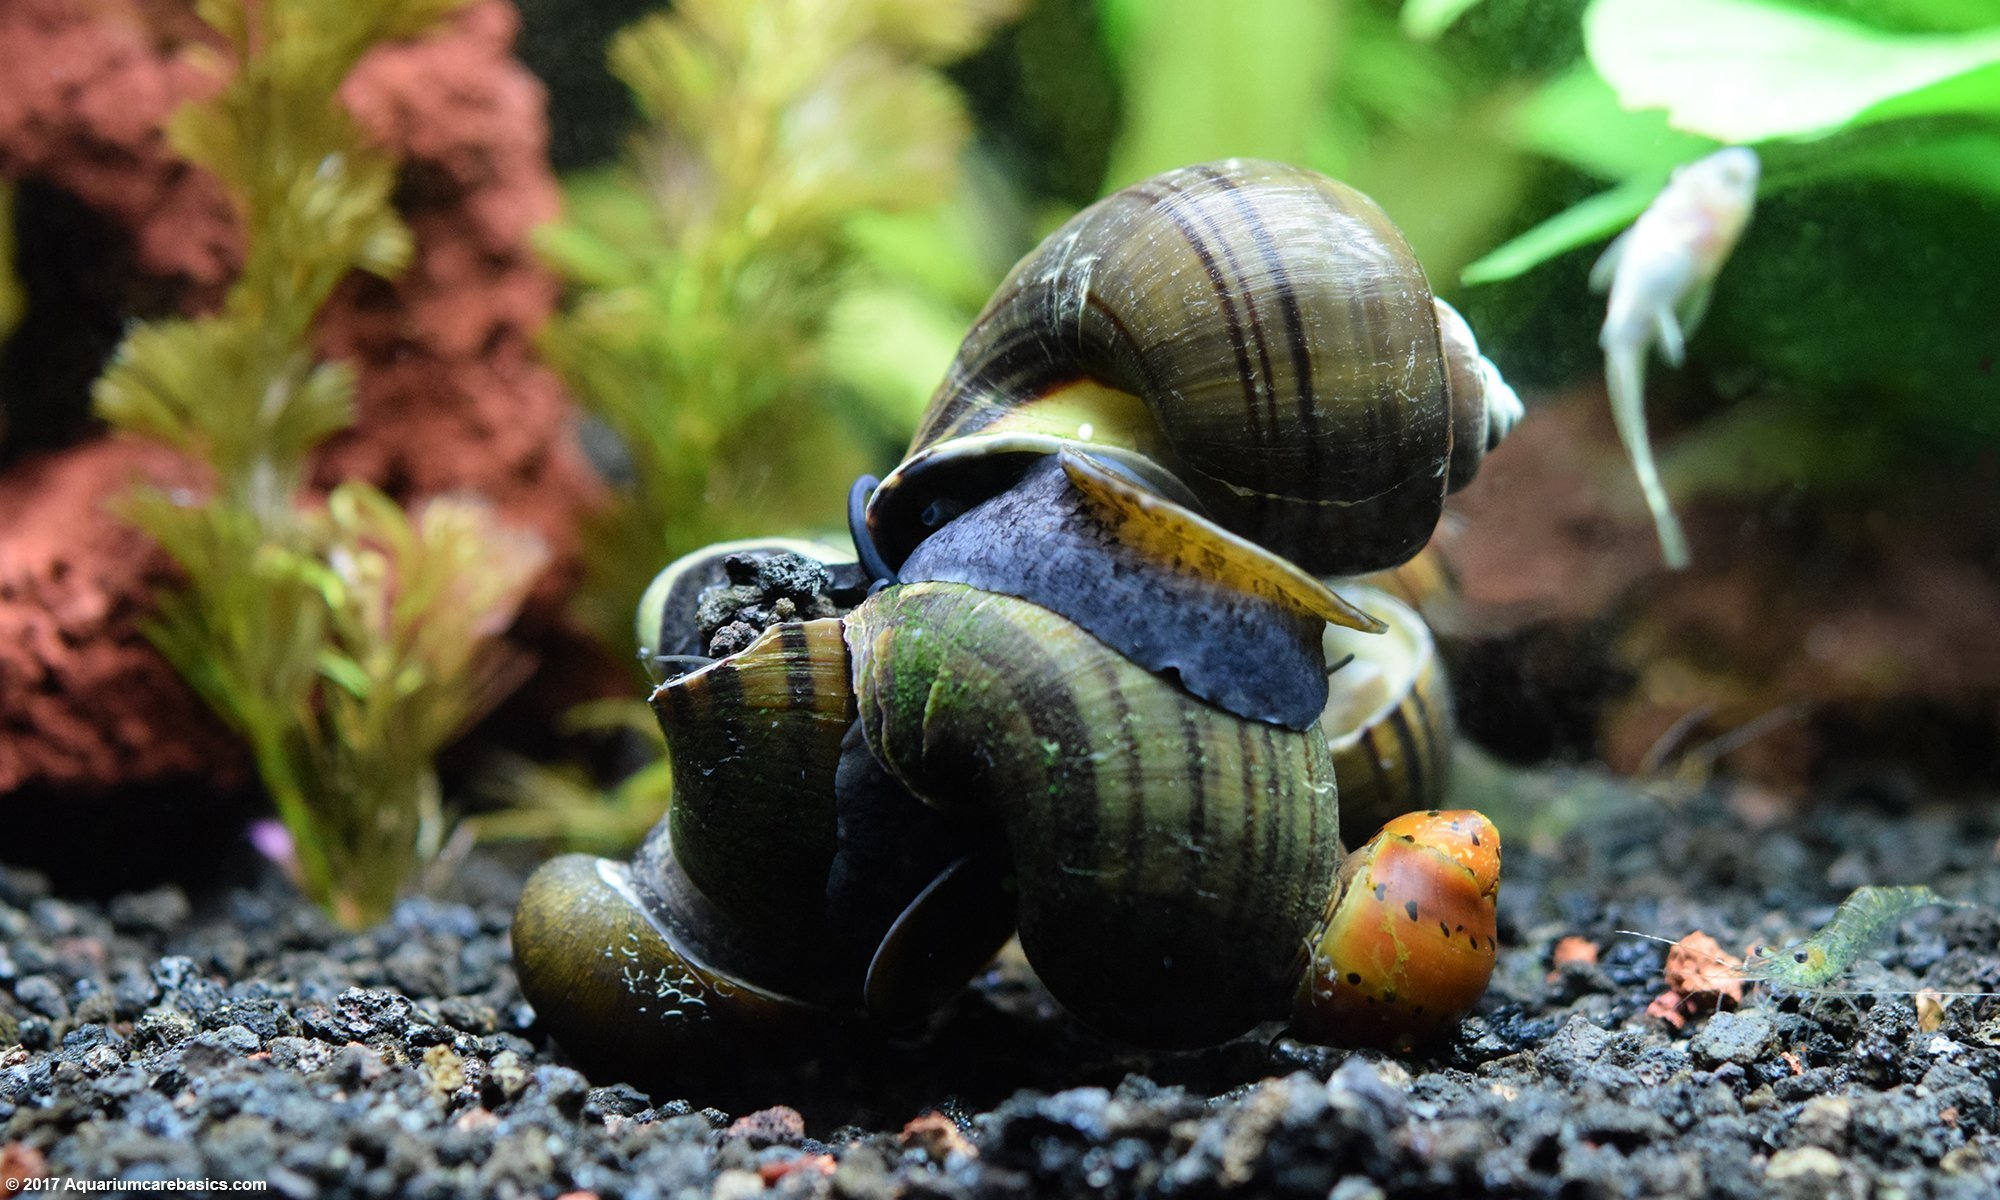 Freshwater Snails On The Bottom Of The Tank